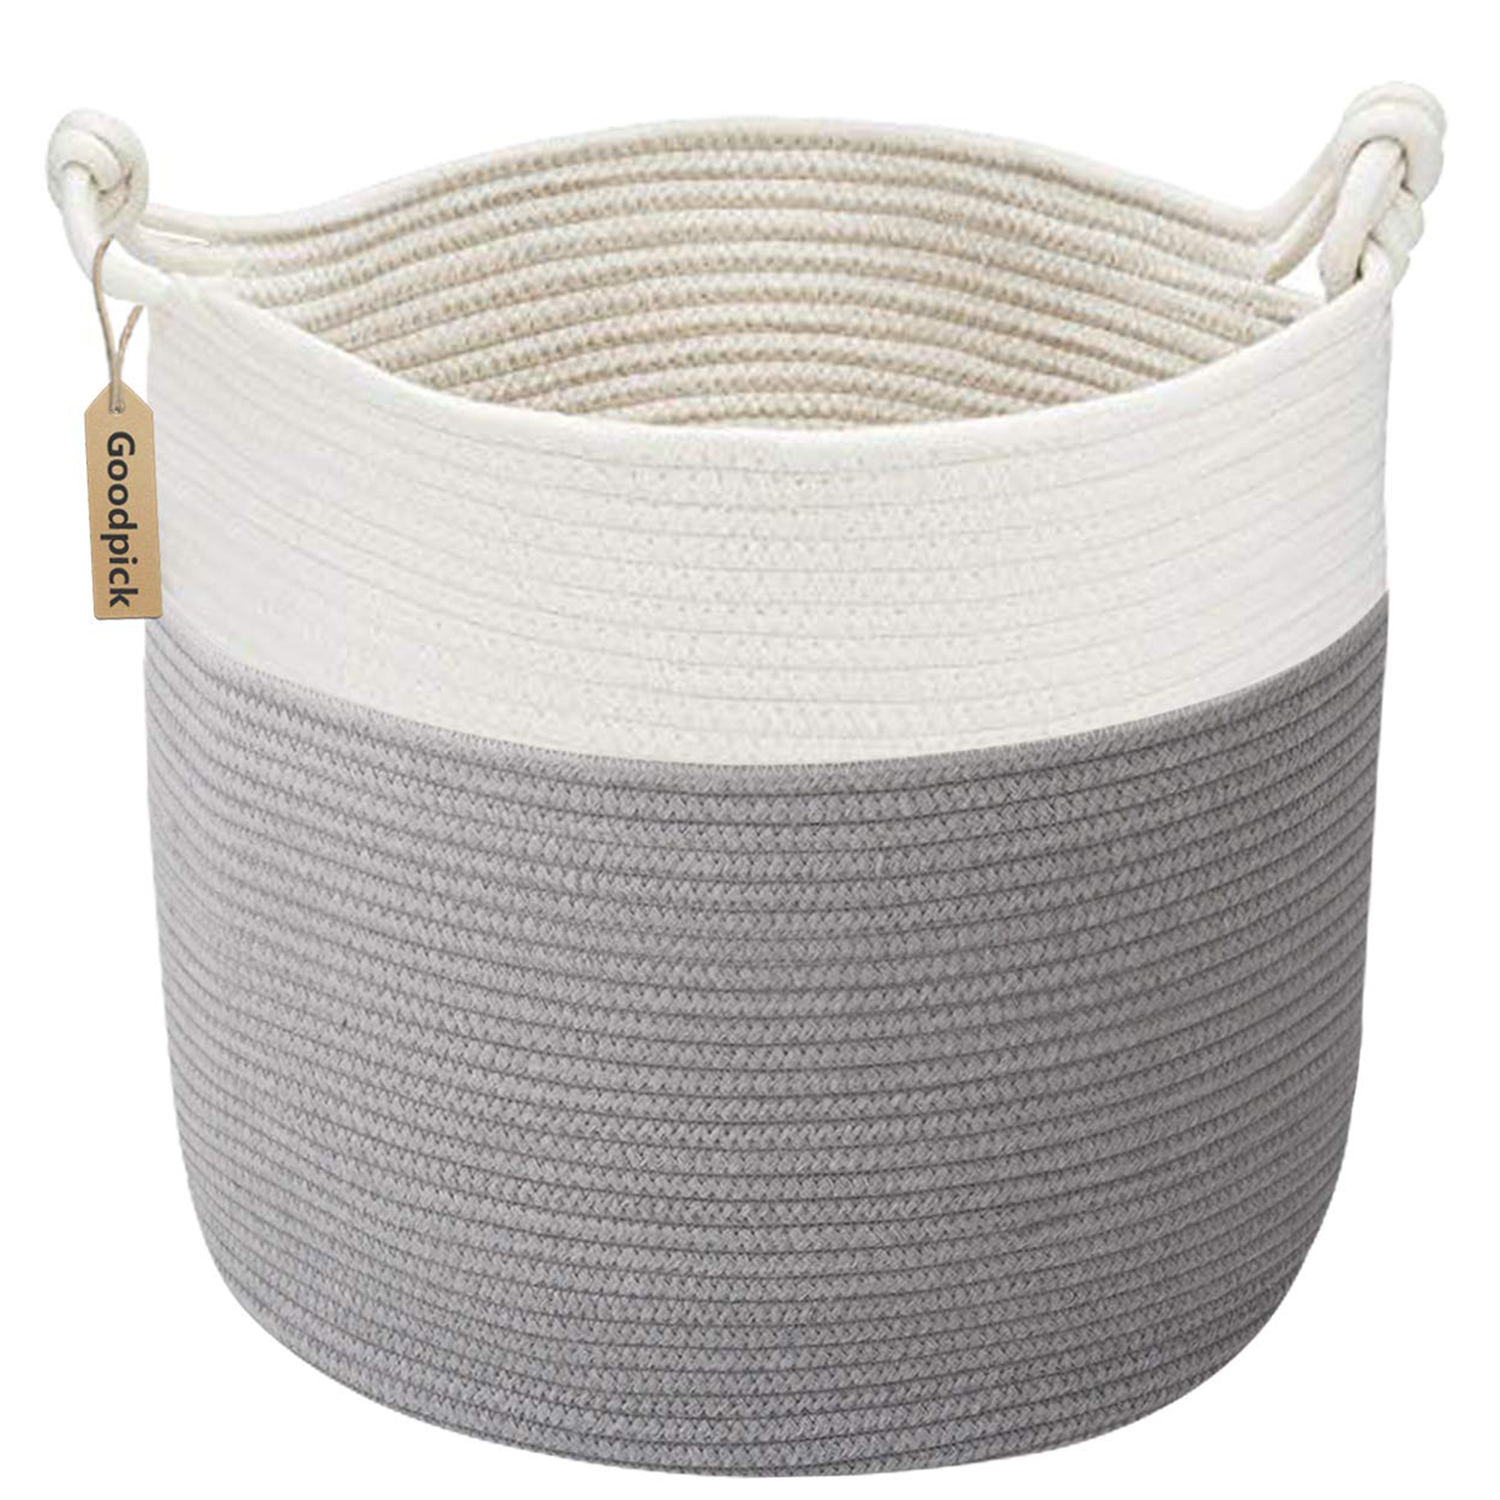 Goodpick Cotton Rope Basket with Handle for Baby Laundry Basket